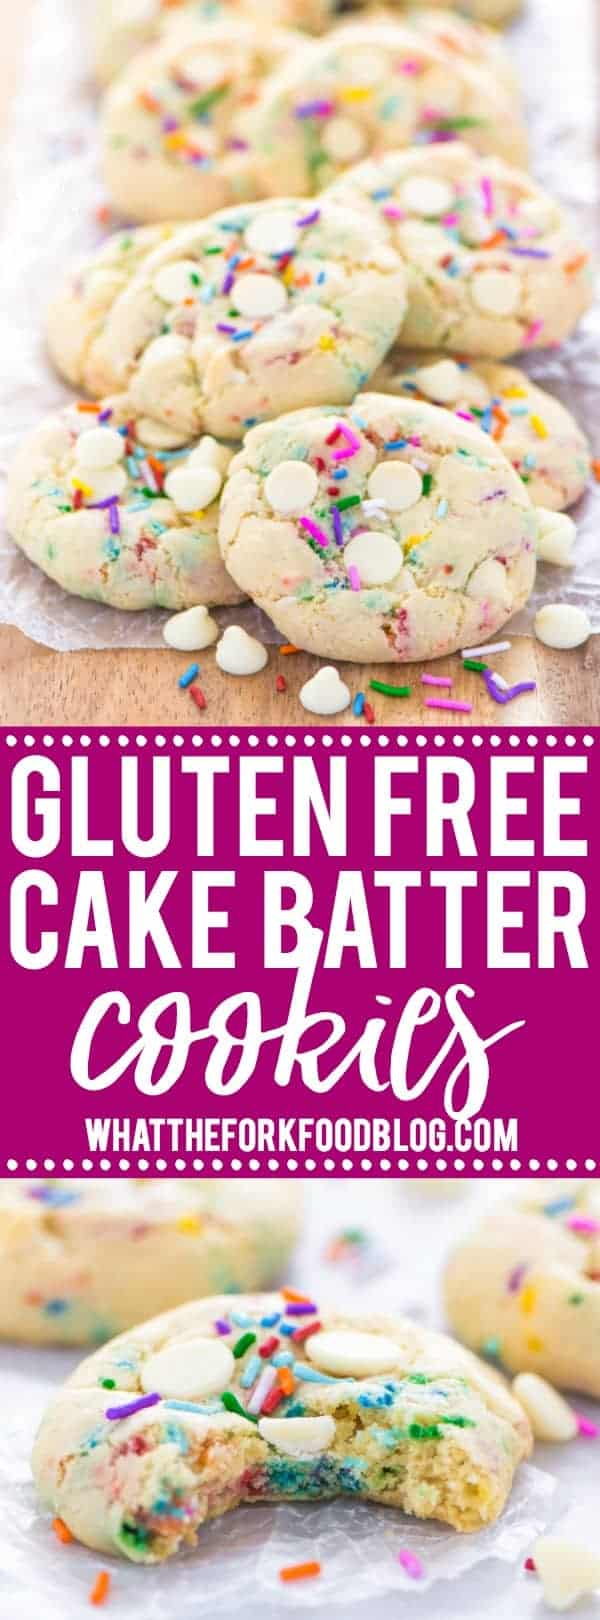 Super easy gluten free cake batter cookies! No chilling time required! Filled with white chocolate chips and loaded with sprinkles, these cookies are crave-worthy! Gluten free cookie recipe from @whattheforkblog | whattheforkfoodblog.com | homemade gluten free cookies | gluten free funfetti cookies | #sprinkles #cookies #funfetti #glutenfree #easyrecipes